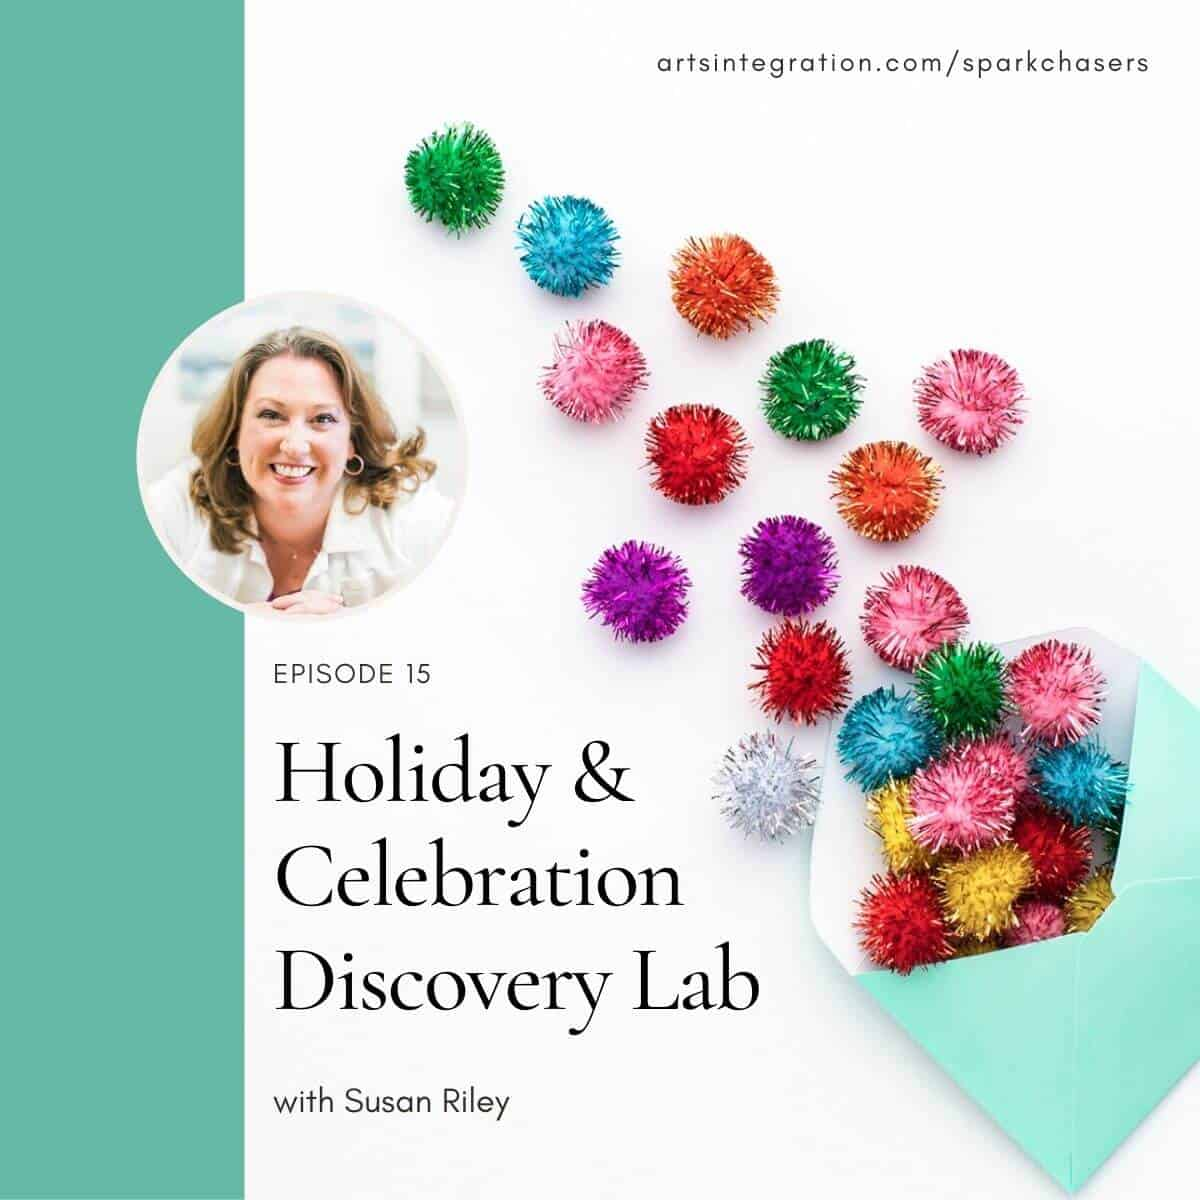 Holiday and Celebration Discovery Lab